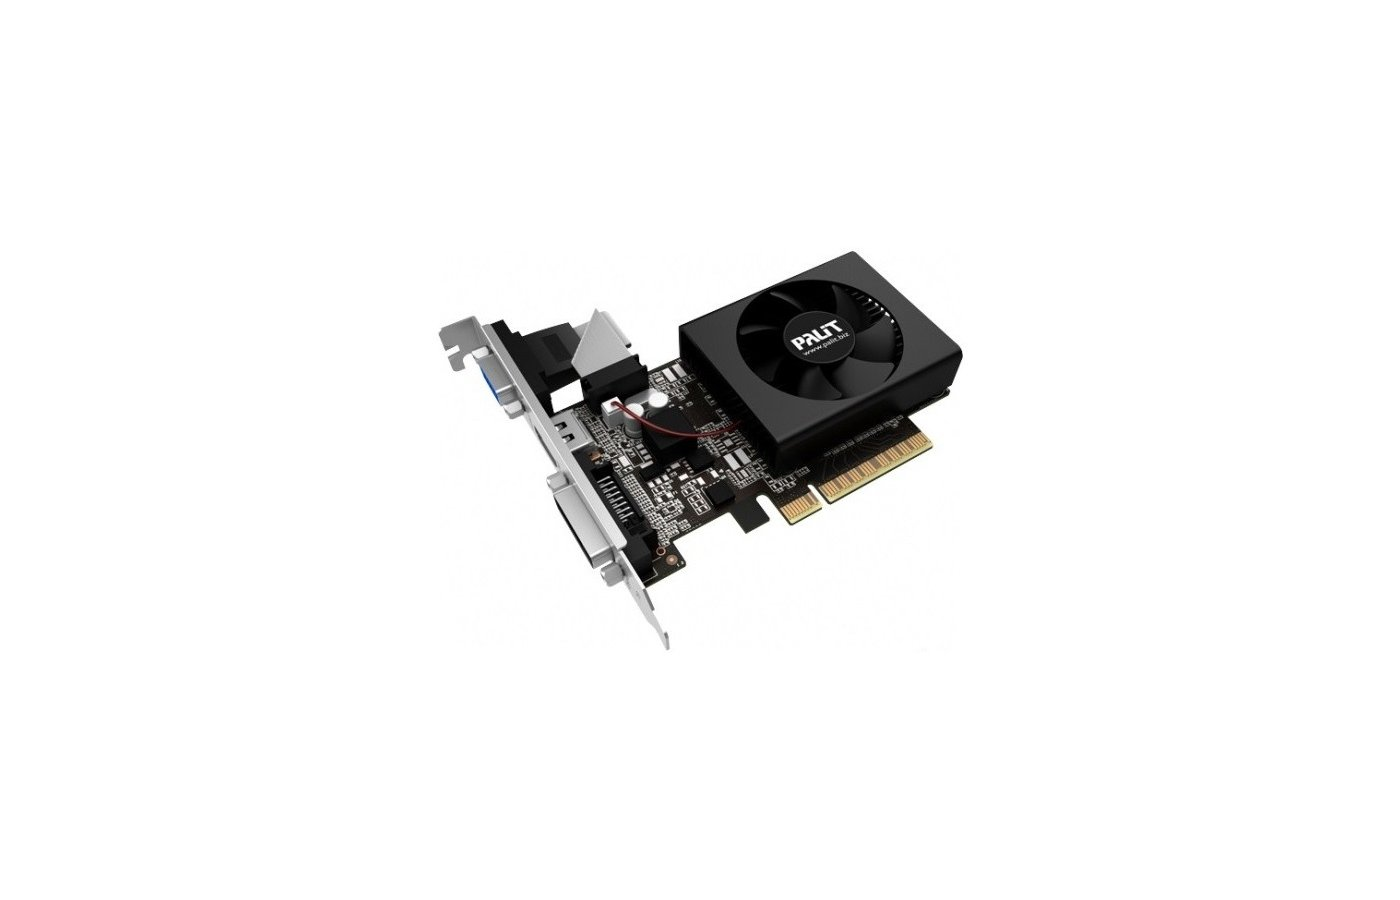 Видеокарта Palit PCI-E PA-GT730-1GD5 nVidia GeForce GT 730 1024Mb 64bit oem low profile